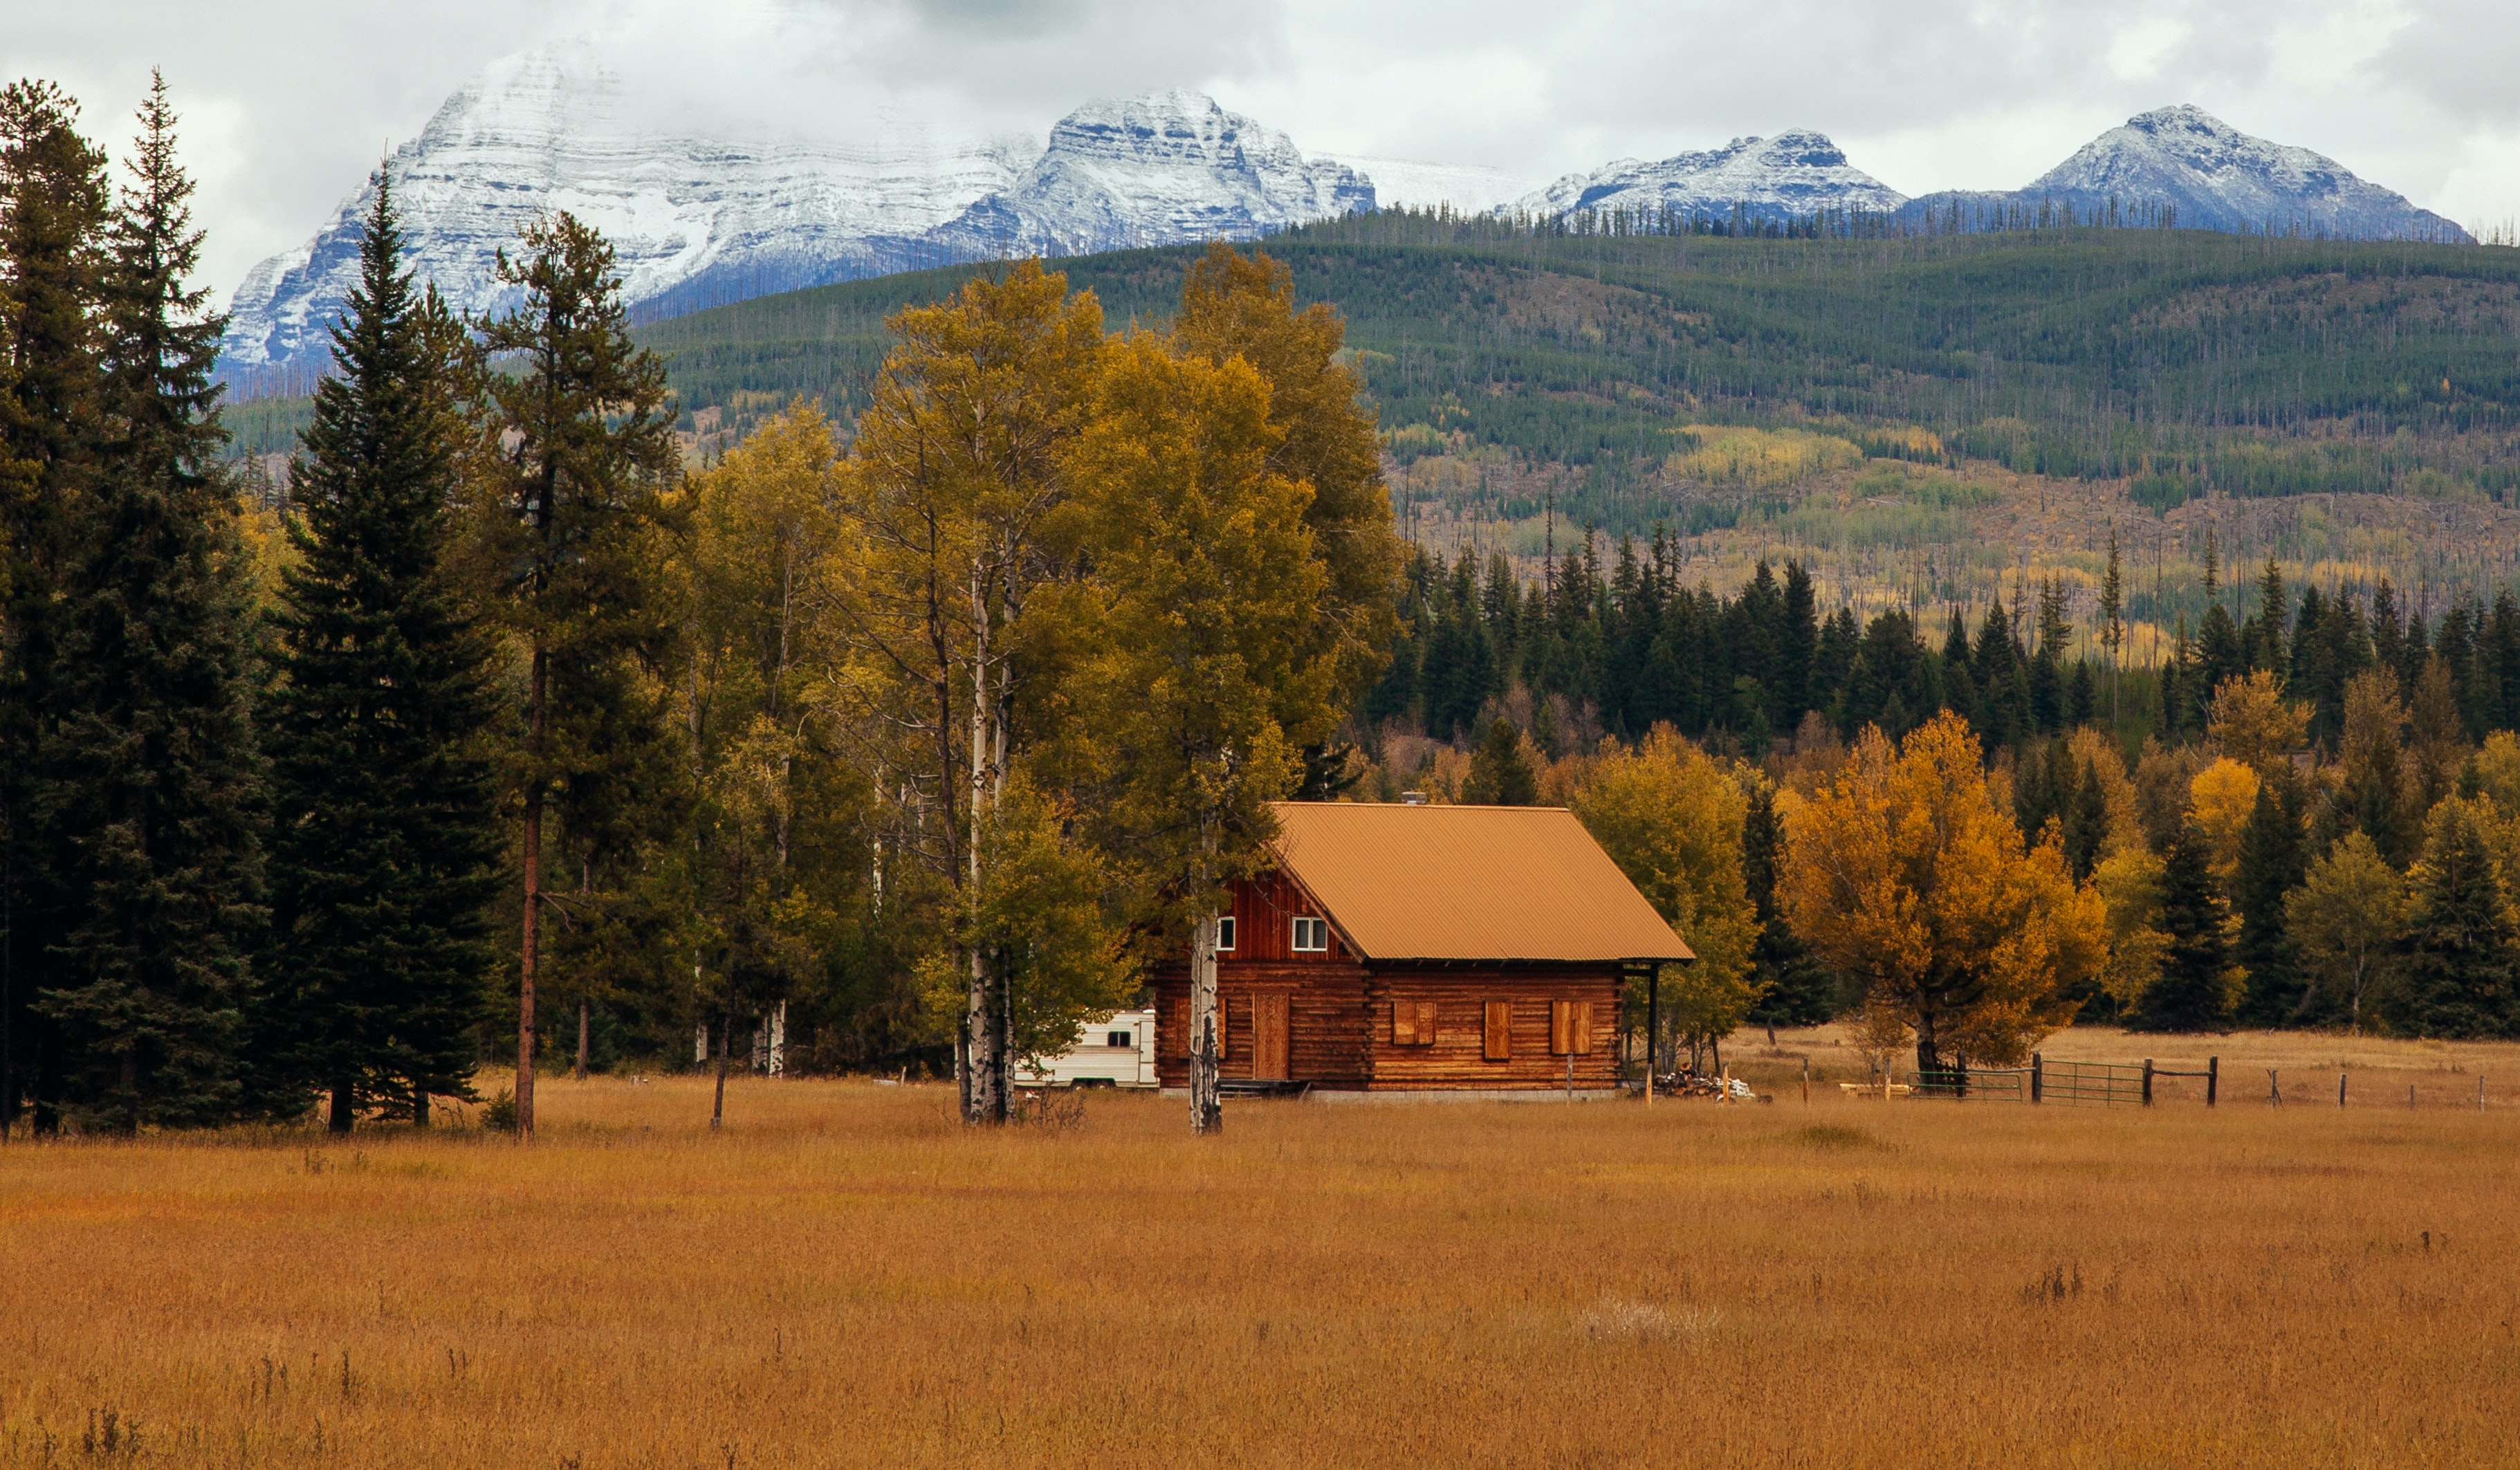 Small log cabin house in Glacier National Park at the edge of a forest and field with snow capped mountains in the background